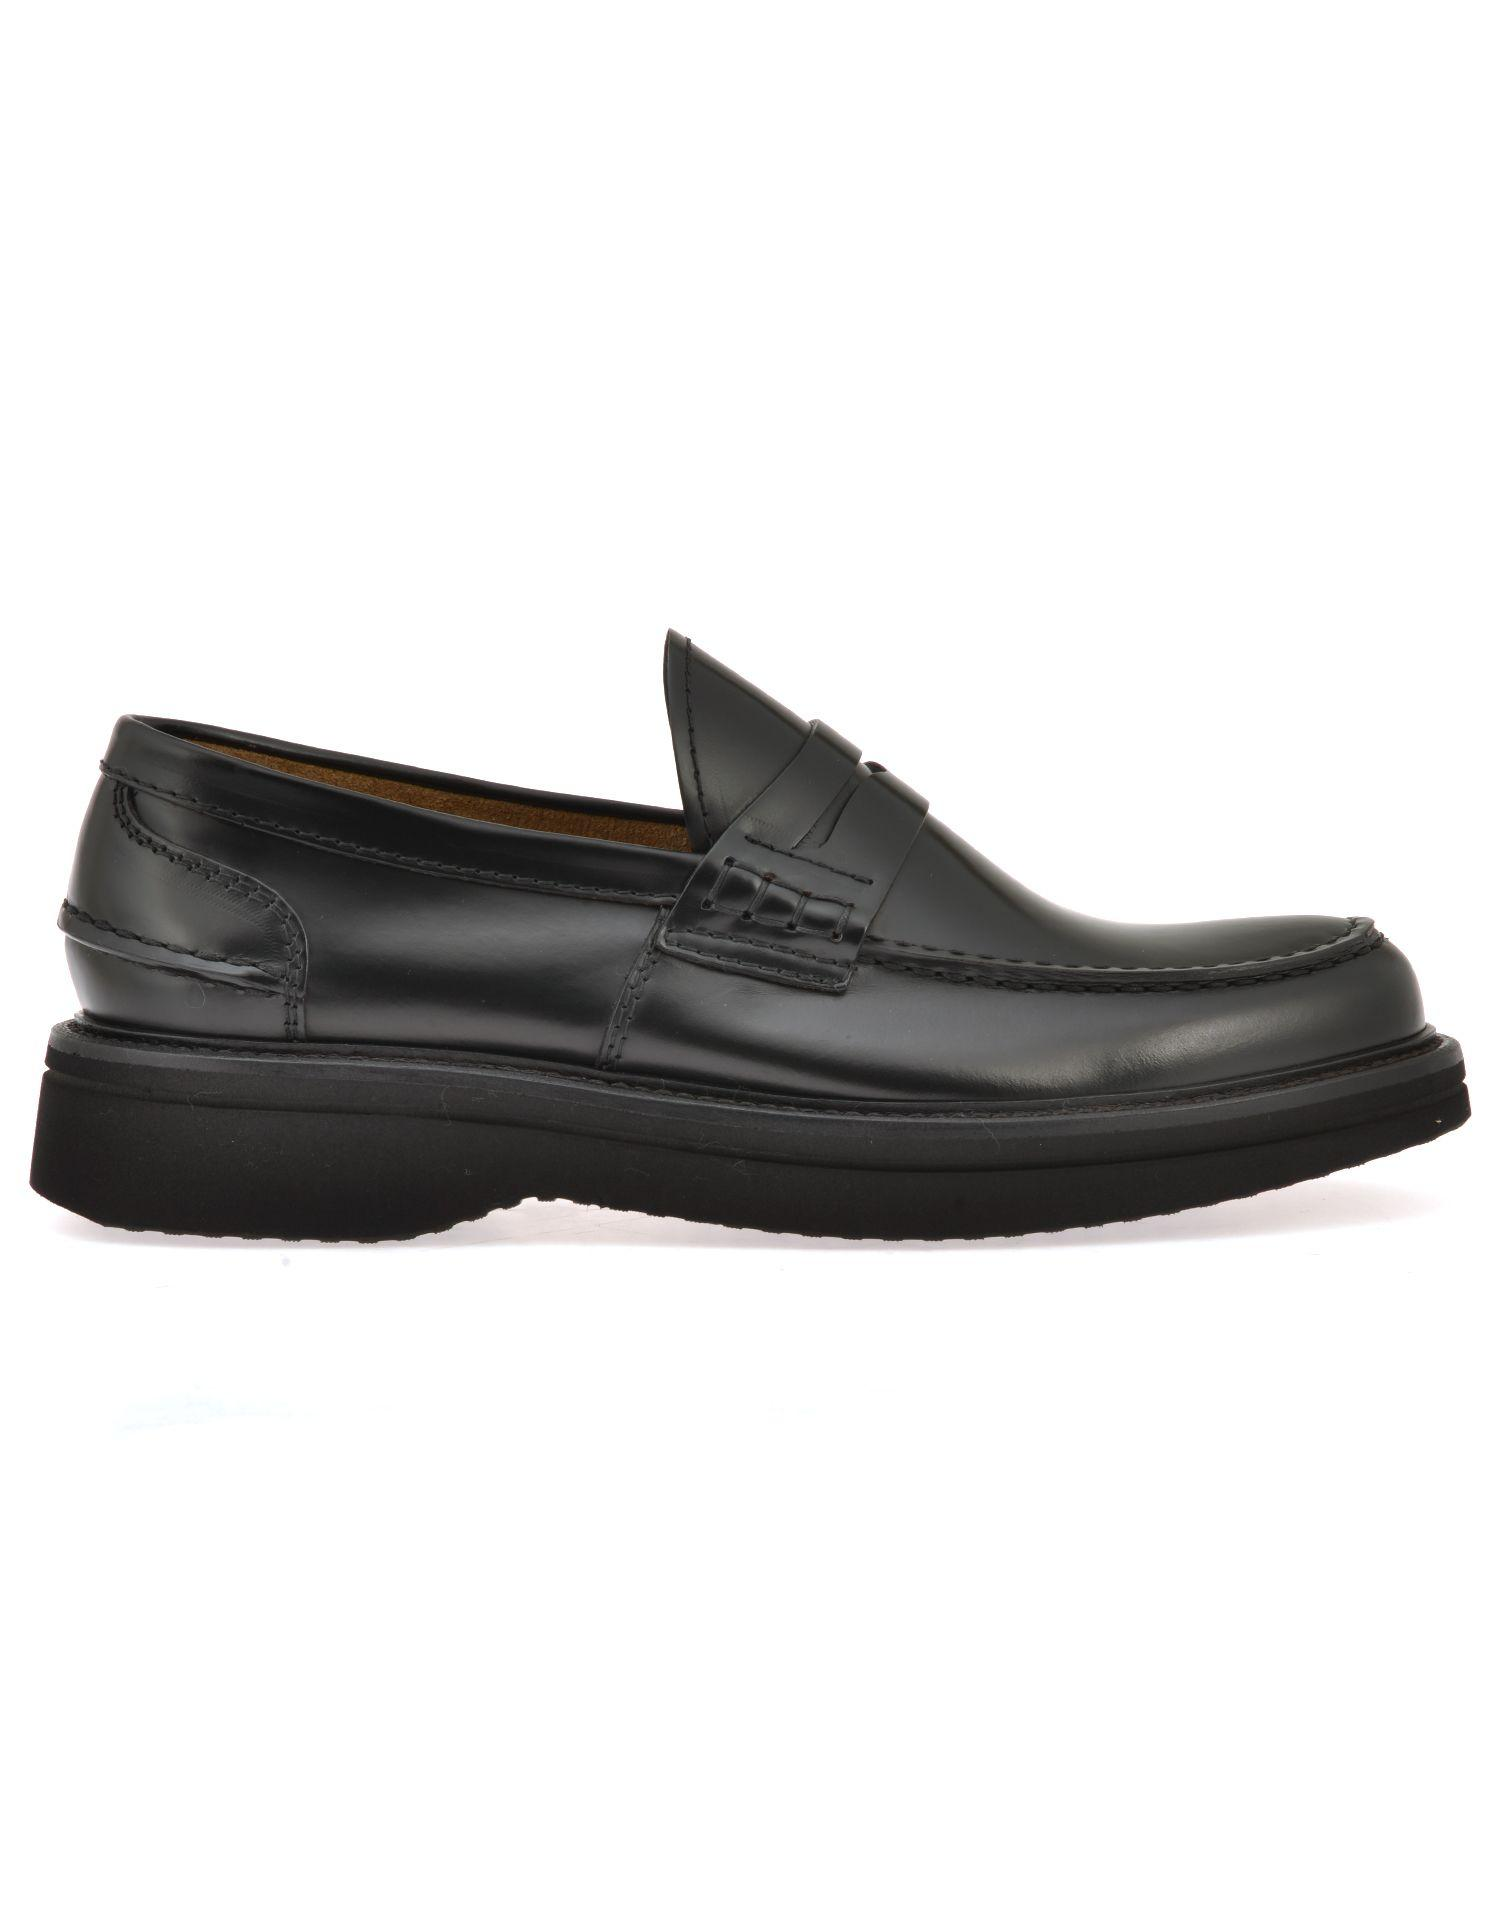 Green George Leather Loafer In Black